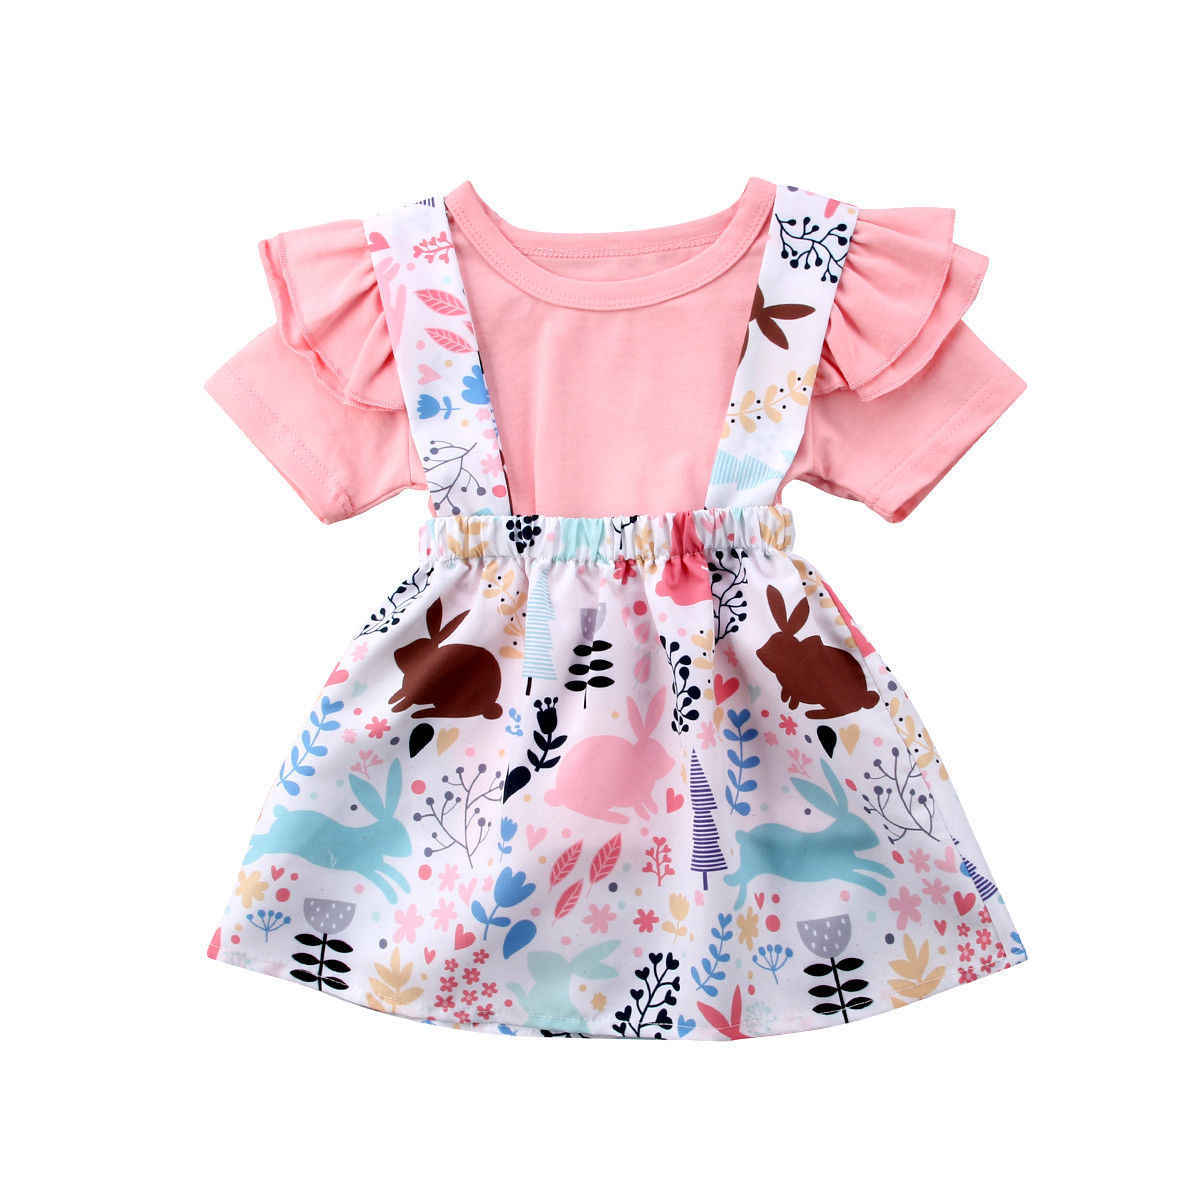 069d0437be874 Detail Feedback Questions about 2019 Summer Easter Newborn Baby Girl Short  Sleeve Tops+ Suspender Tutu Skirt Bunny Rabbit Clothes Cute Set Outfits on  ...